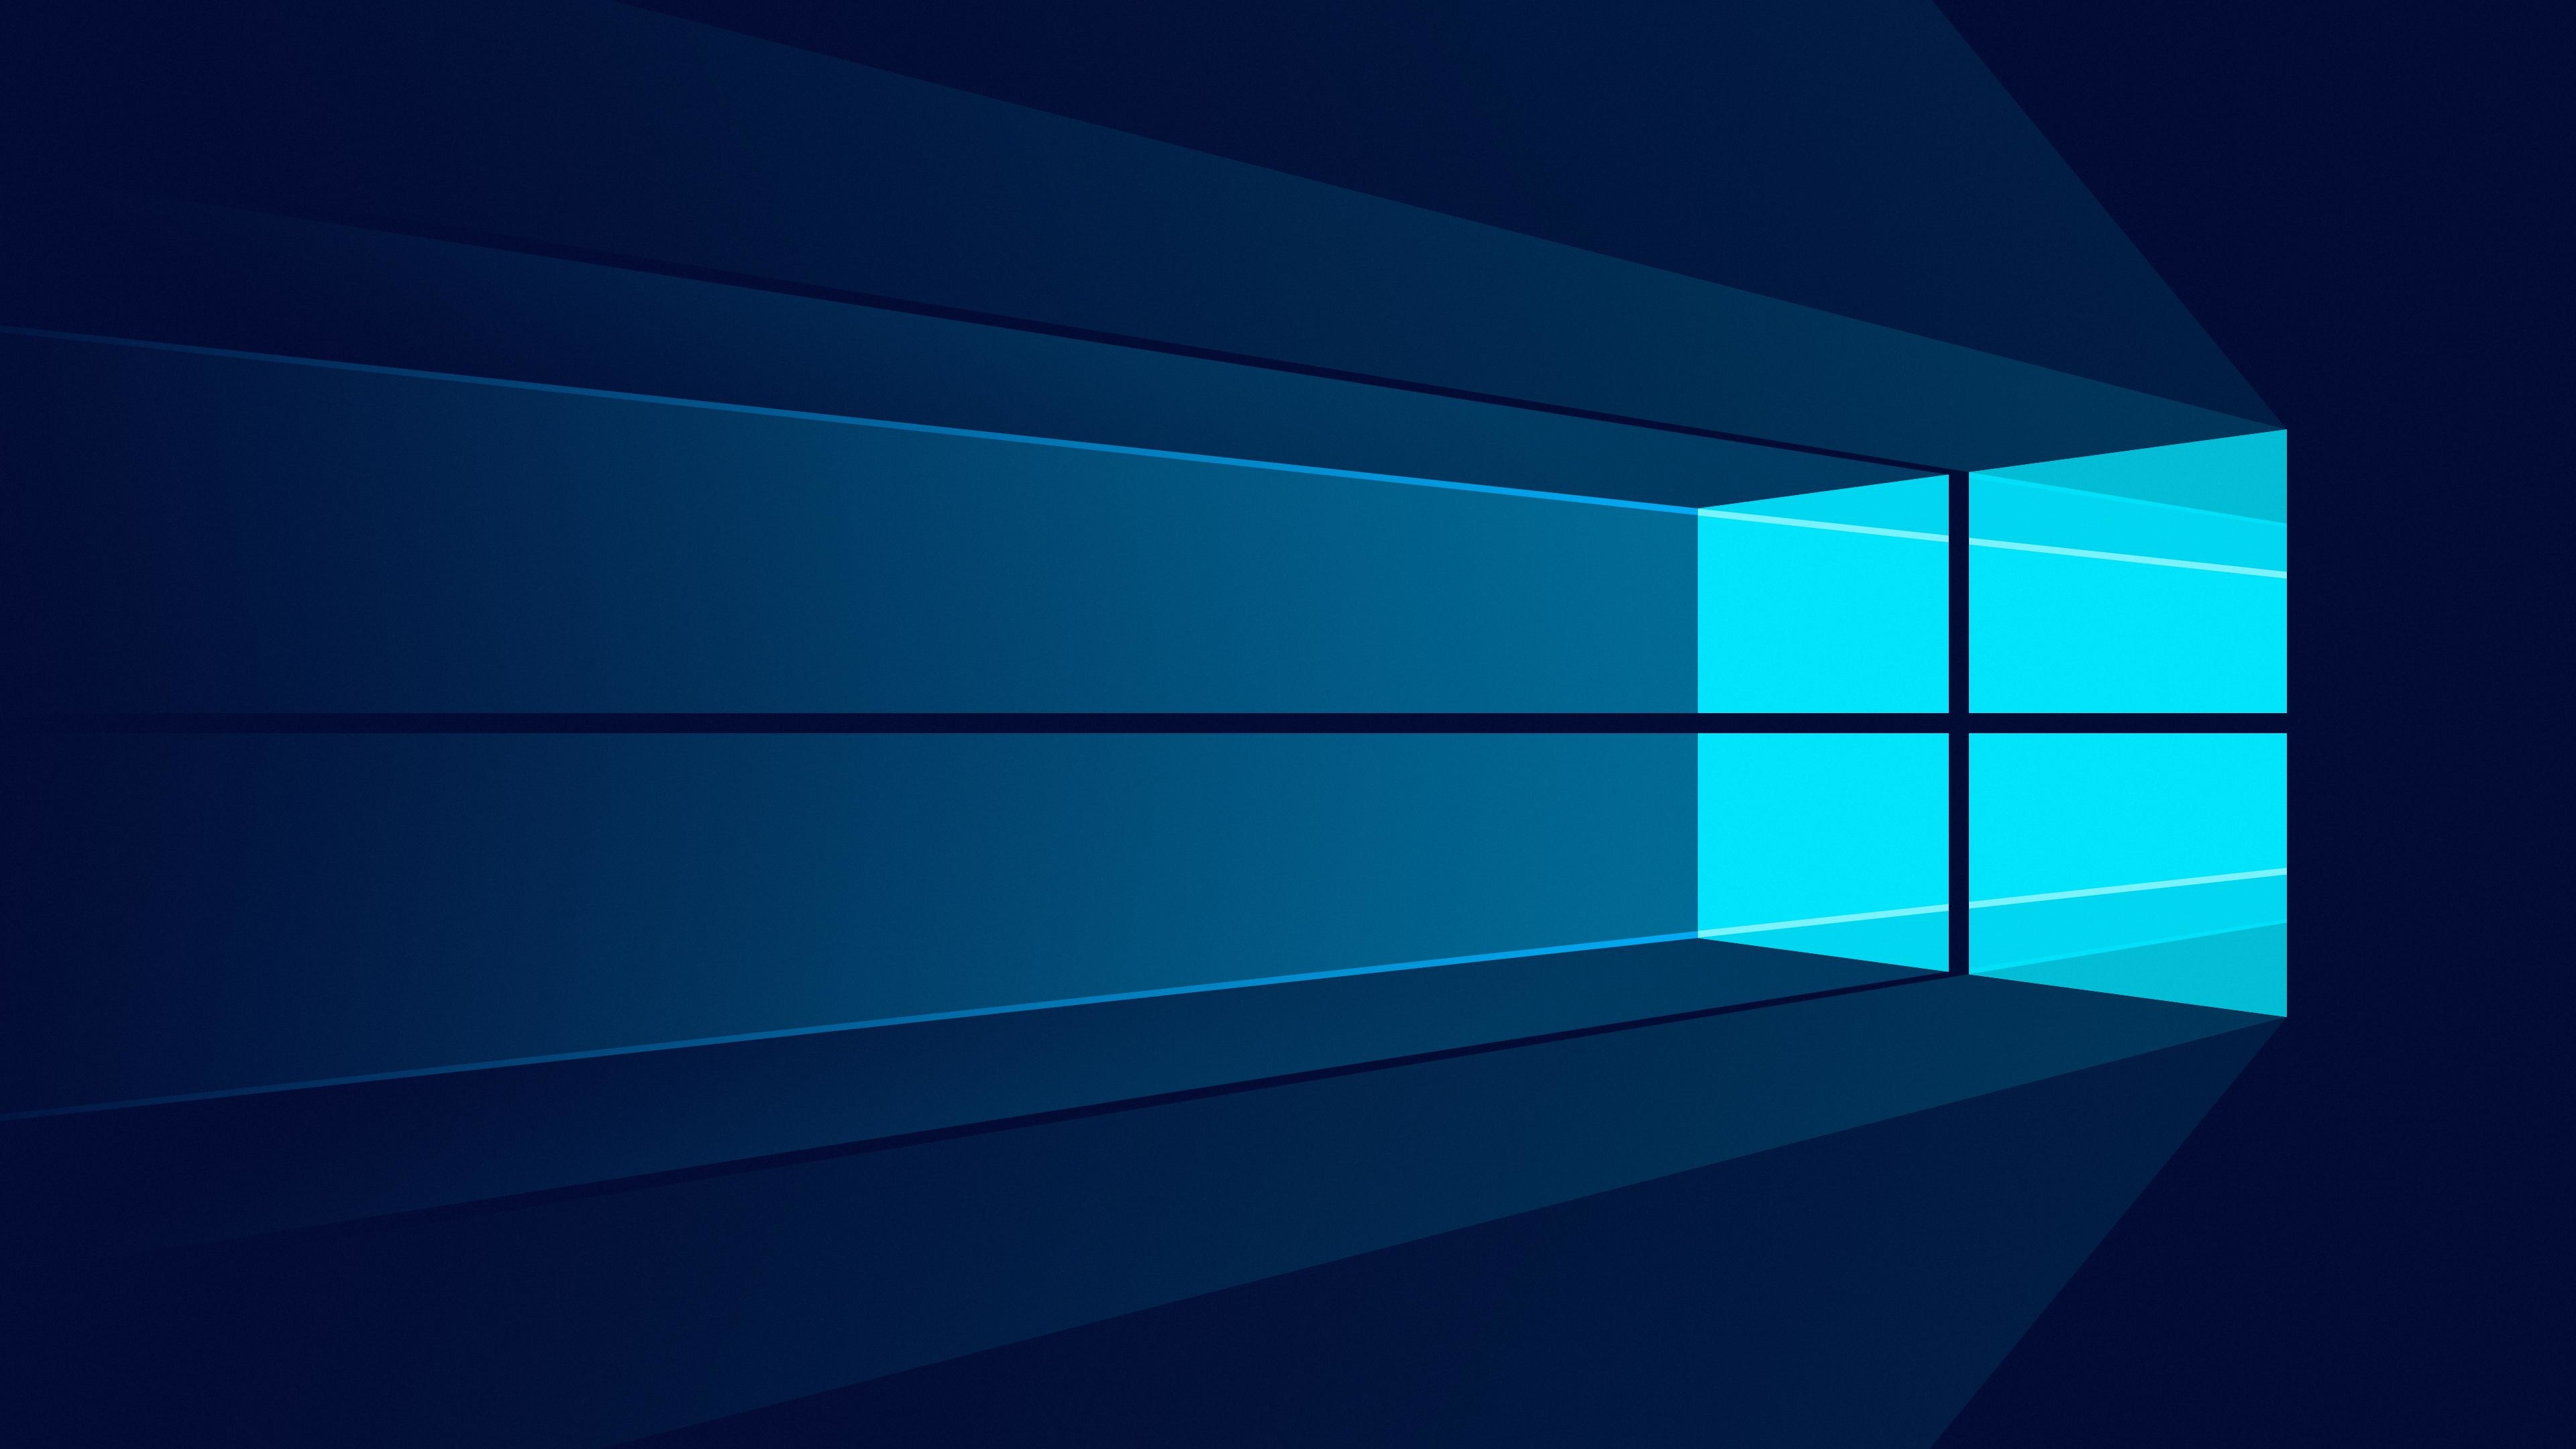 windows 10 minimal hd 4k wallpaper